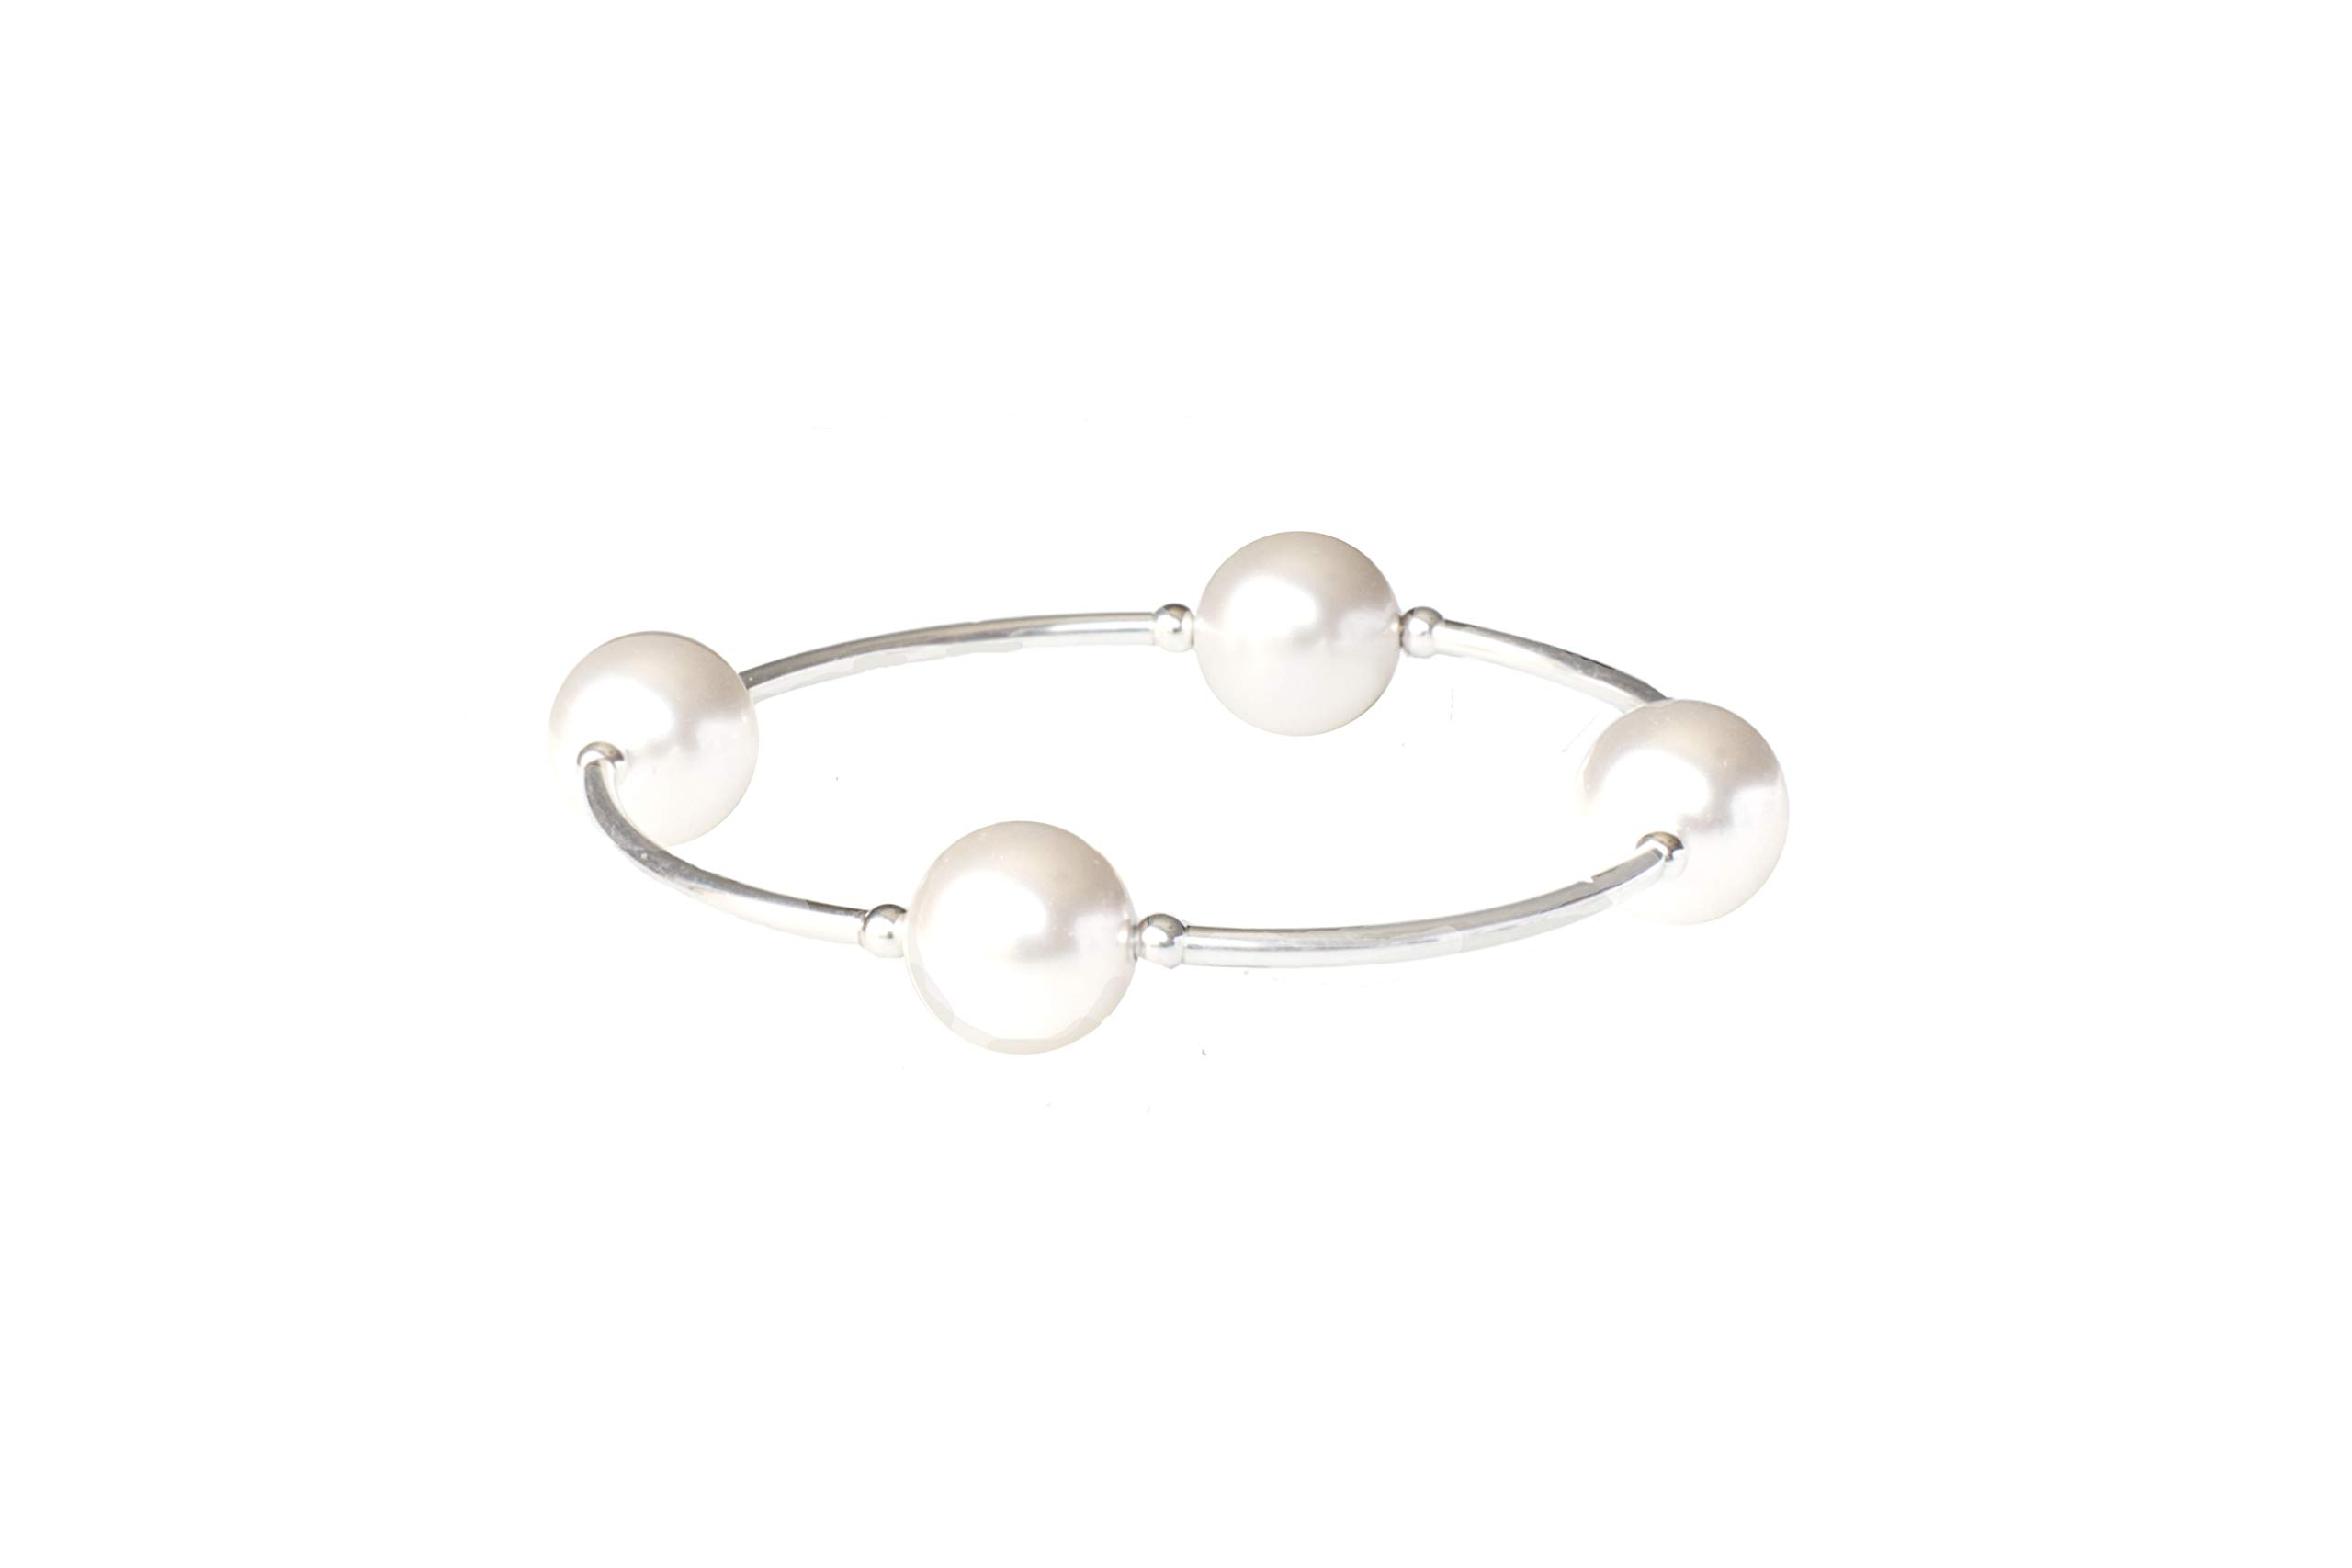 Blessing Bracelet by Made As Intended - 12MM White Swarovski Simulated Pearls by Blessing Bracelet